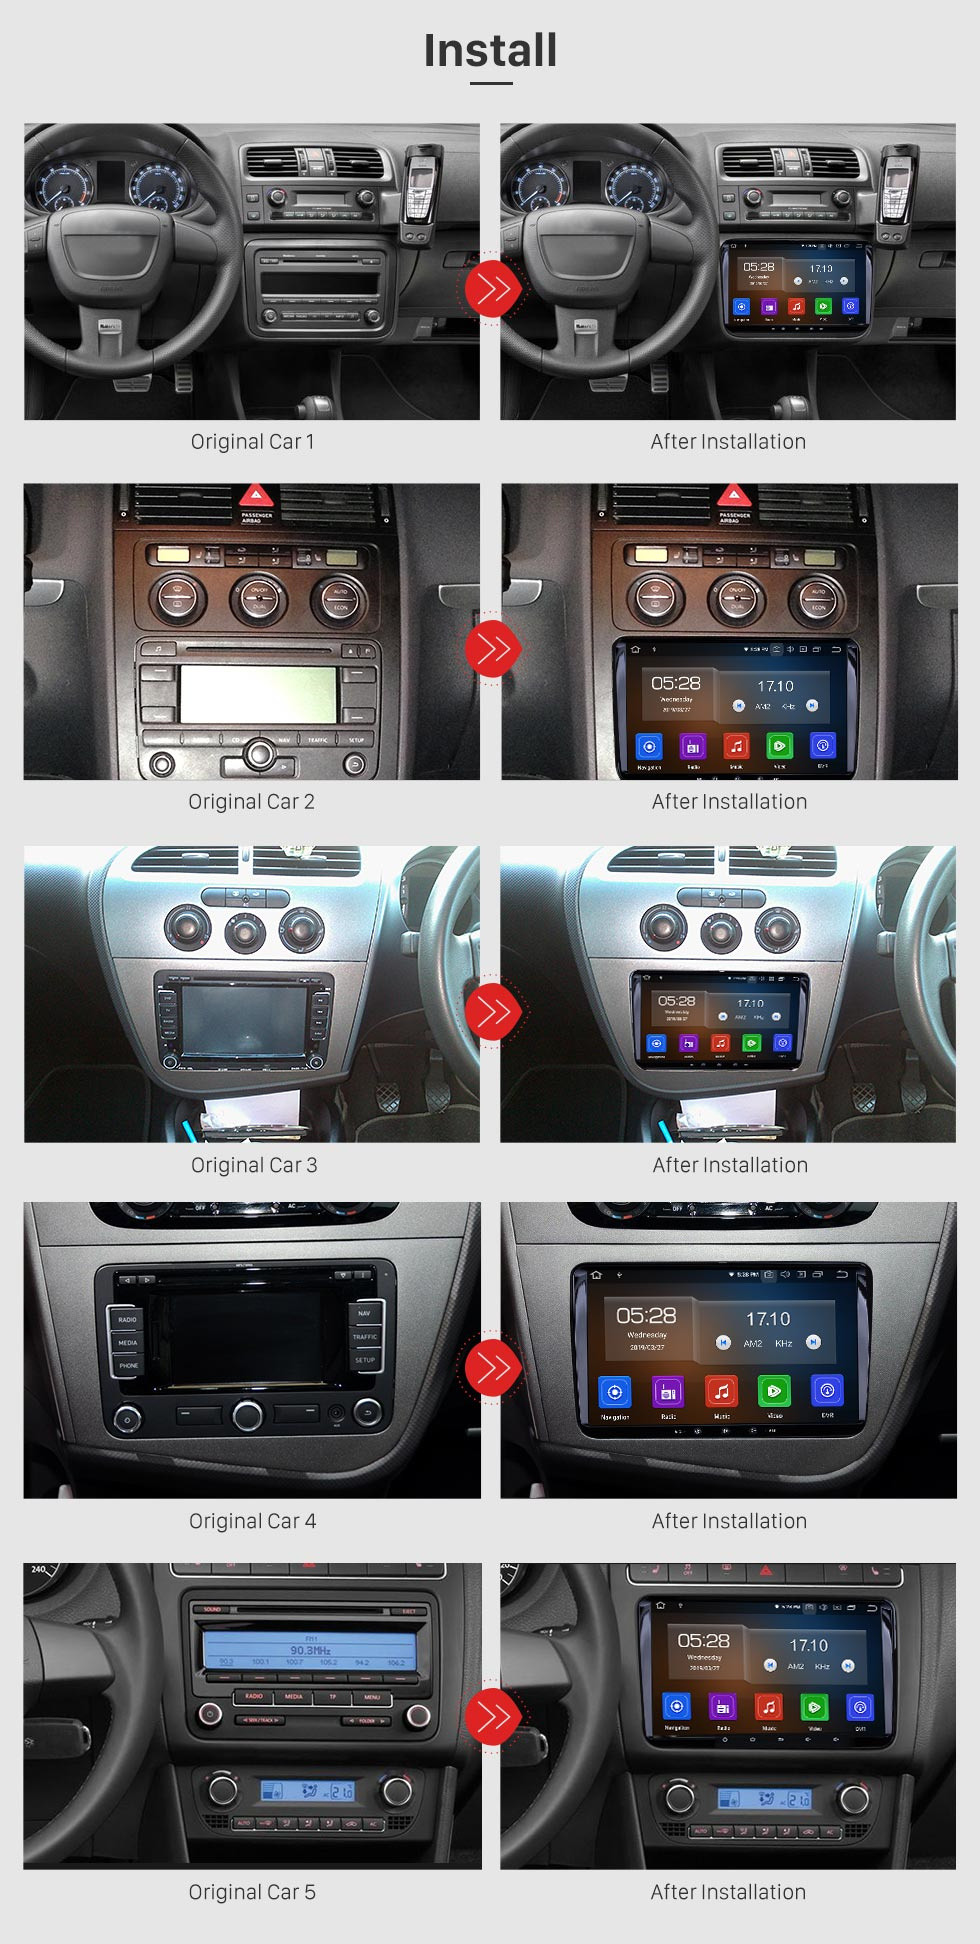 Seicane 9 inch Android 10.0 Radio Car GPS Navigation Head Unit for 2008-2013 VW Volkswagen Scirocco Passat CC Golf 6 with 3G WiFi Mirror Link OBD2 Bluetooth